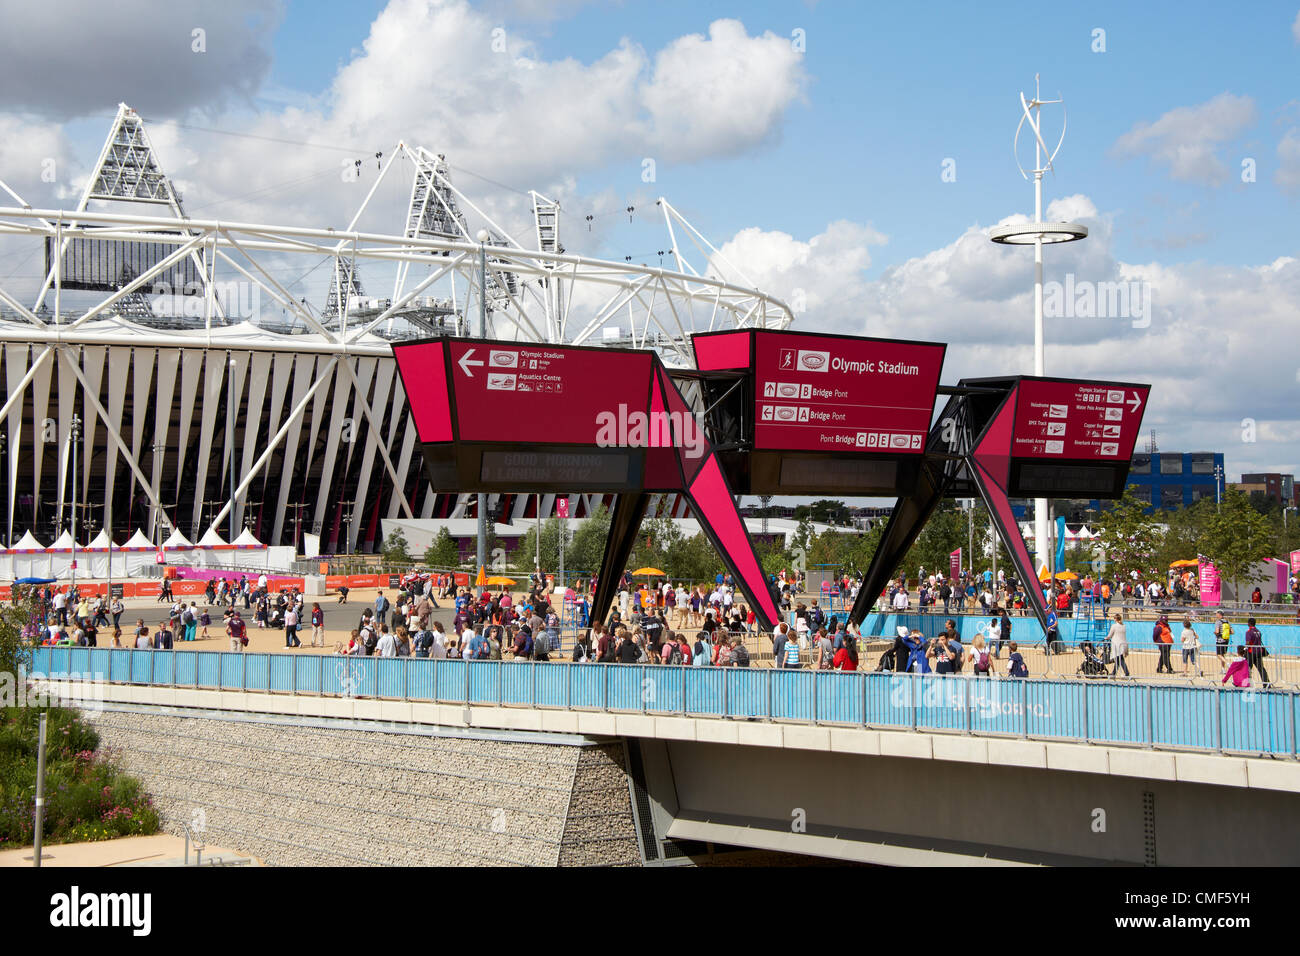 Athletics Stadium Beyond Stratford Gate On A Sunny Day At Olympic Park London 2012 Games Site E20 UK